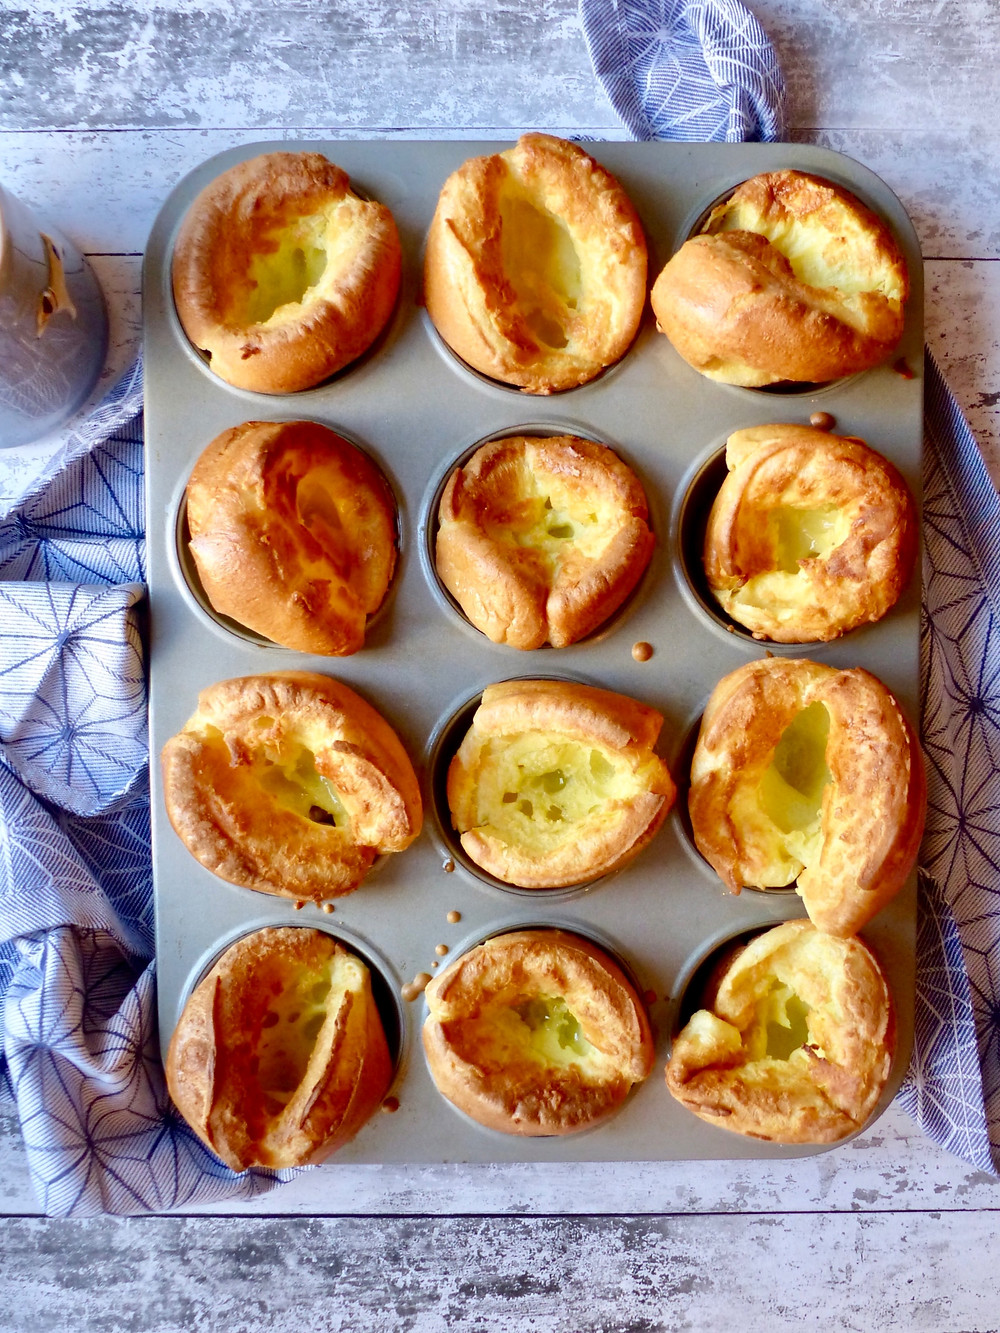 Light and crispy Yorkshire puddings, also known as popovers